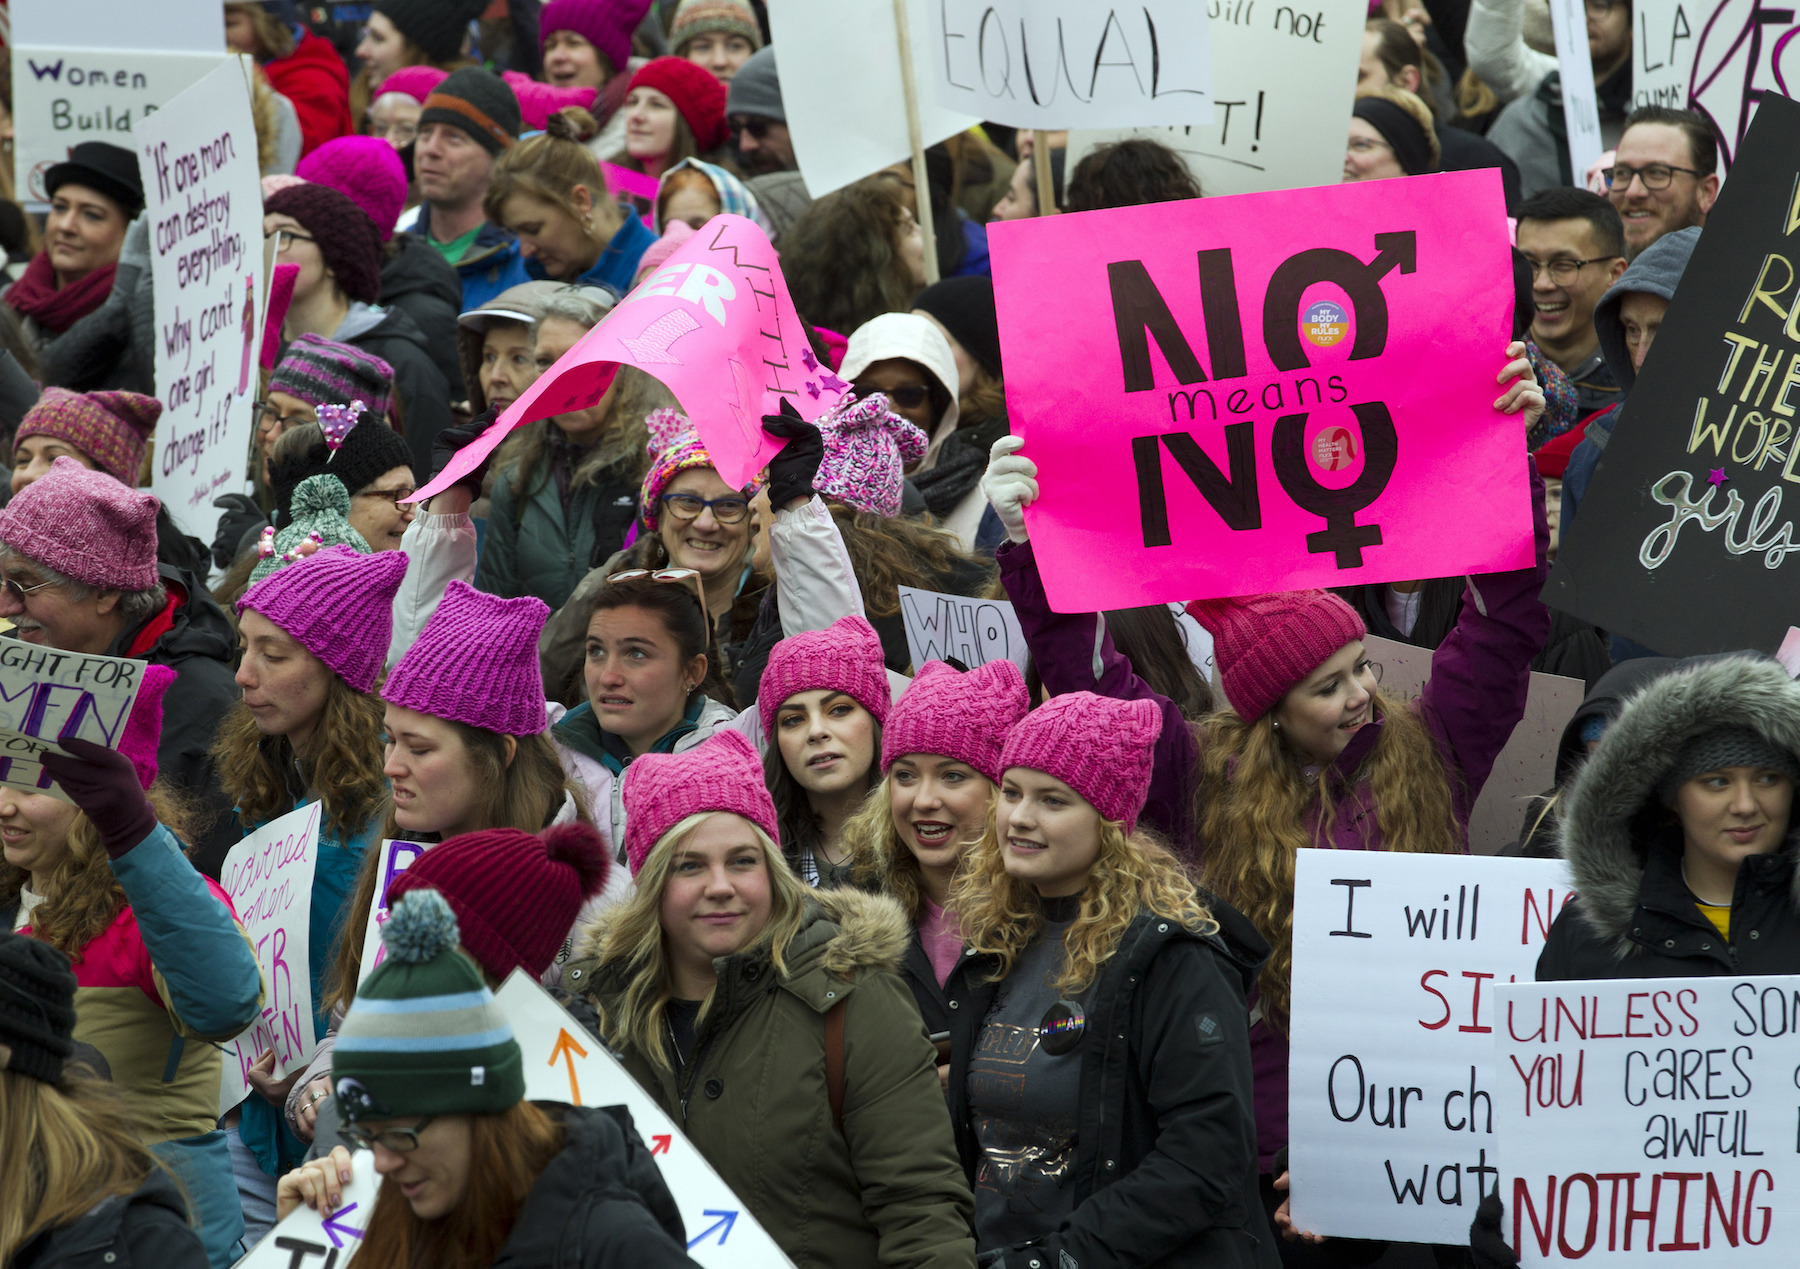 "<div class=""meta image-caption""><div class=""origin-logo origin-image ap""><span>AP</span></div><span class=""caption-text"">Demonstrators hold banners as they march on Pennsylvania Avenue during the Women's March in Washington on Saturday, Jan. 19, 2019. (AP Photo/Jose Luis Magana))</span></div>"